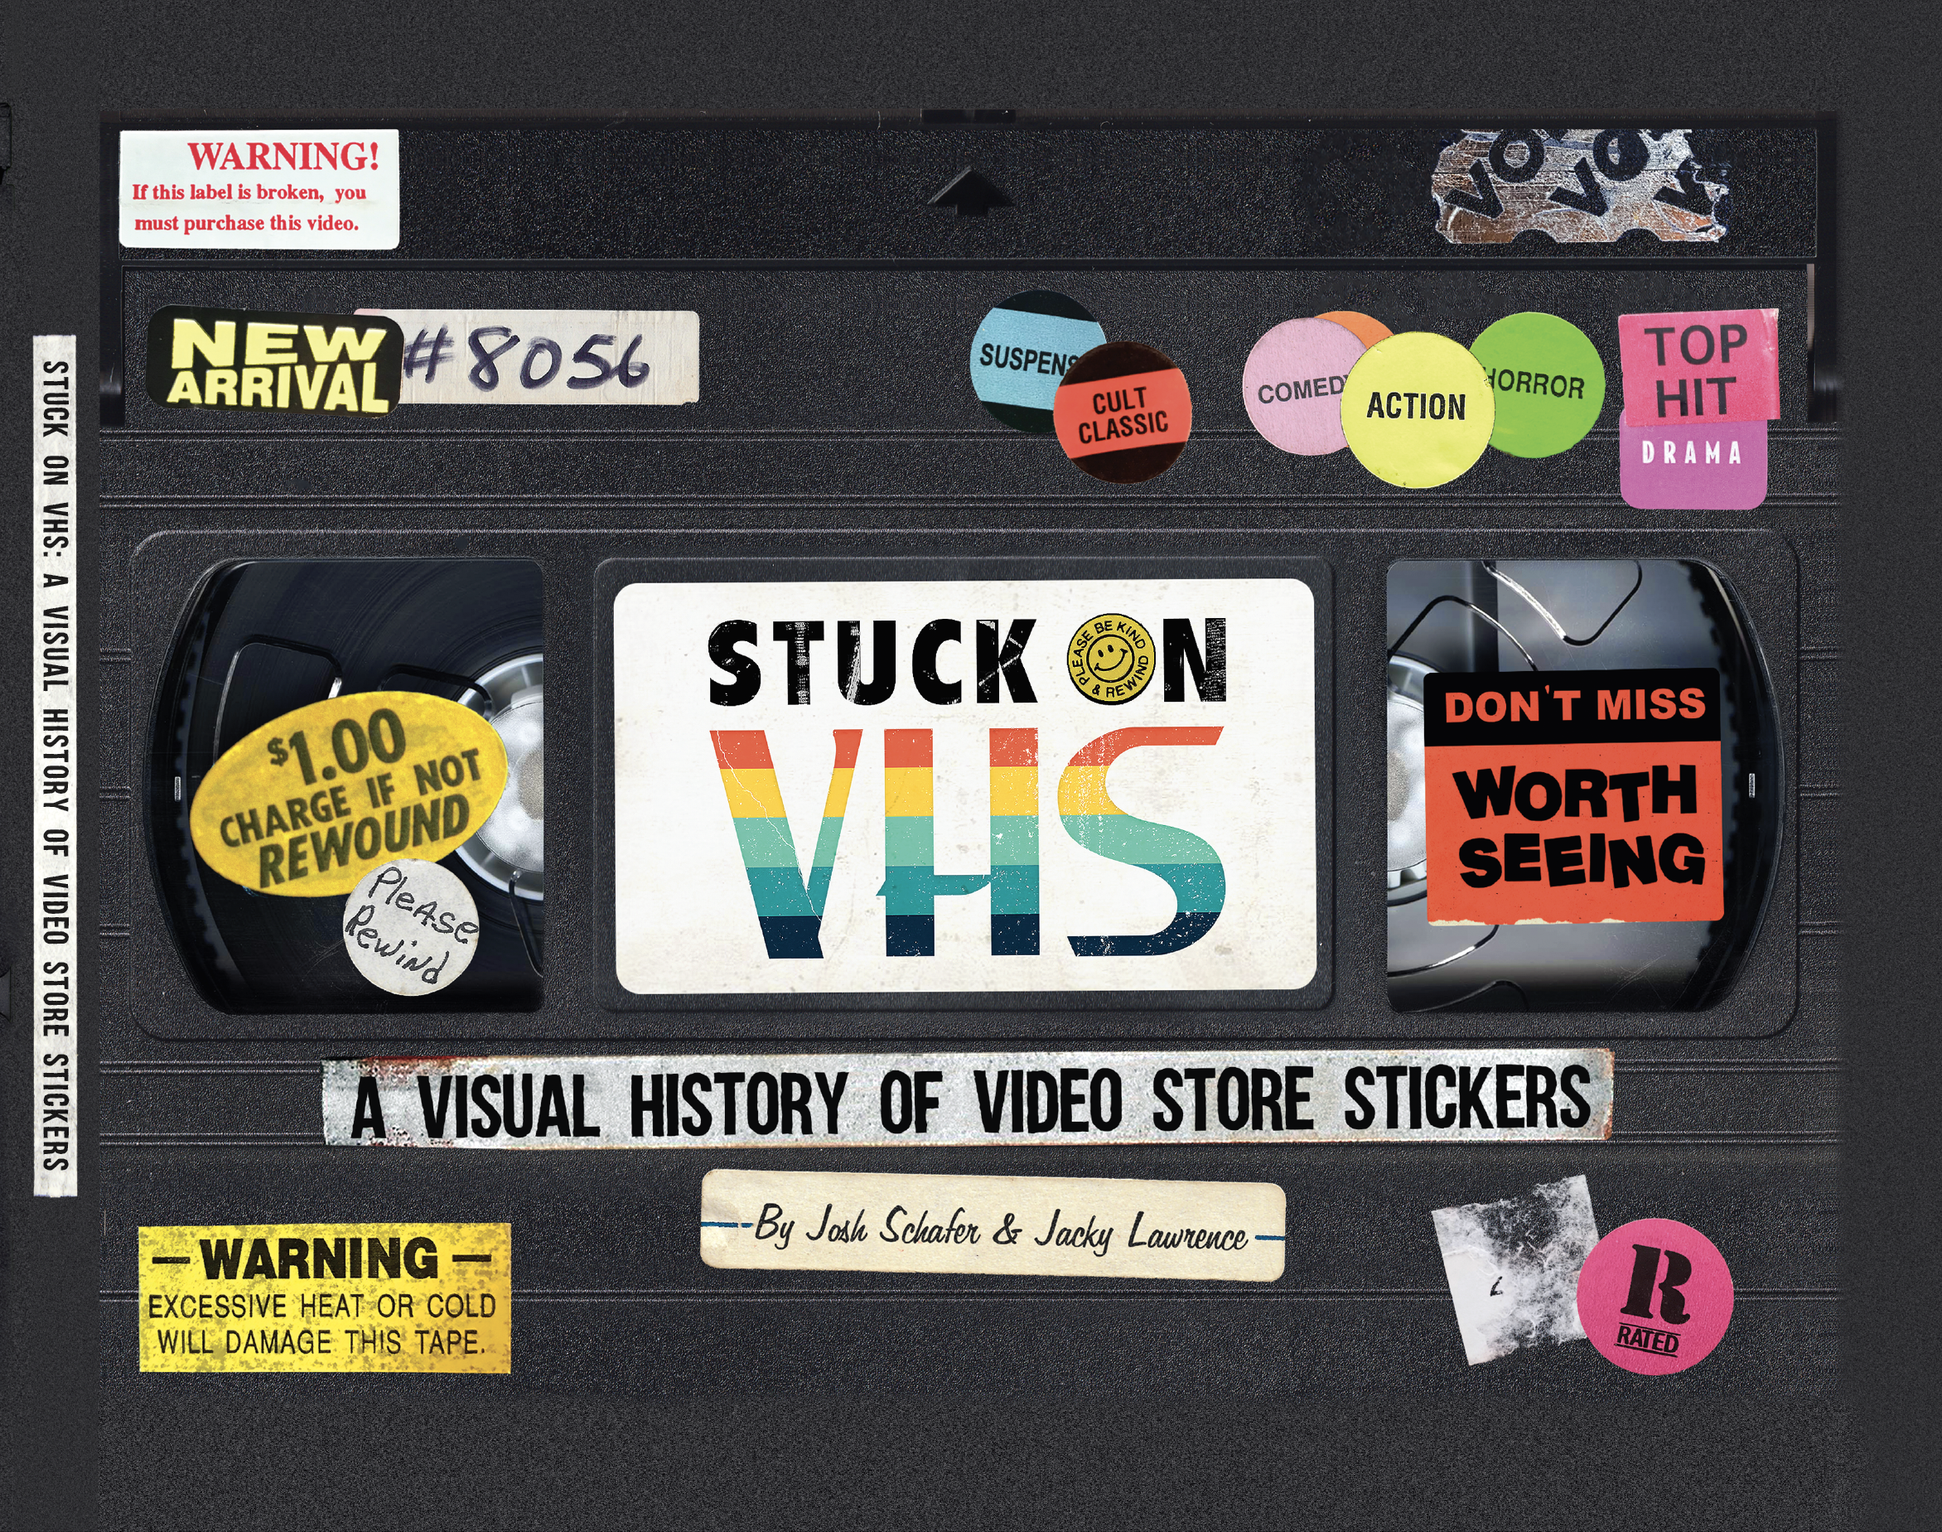 Alamo Drafthouse Celebrates VHS Culture with STUCK ON VHS: A VISUAL HISTORY OF VIDEO STORE STICKERS